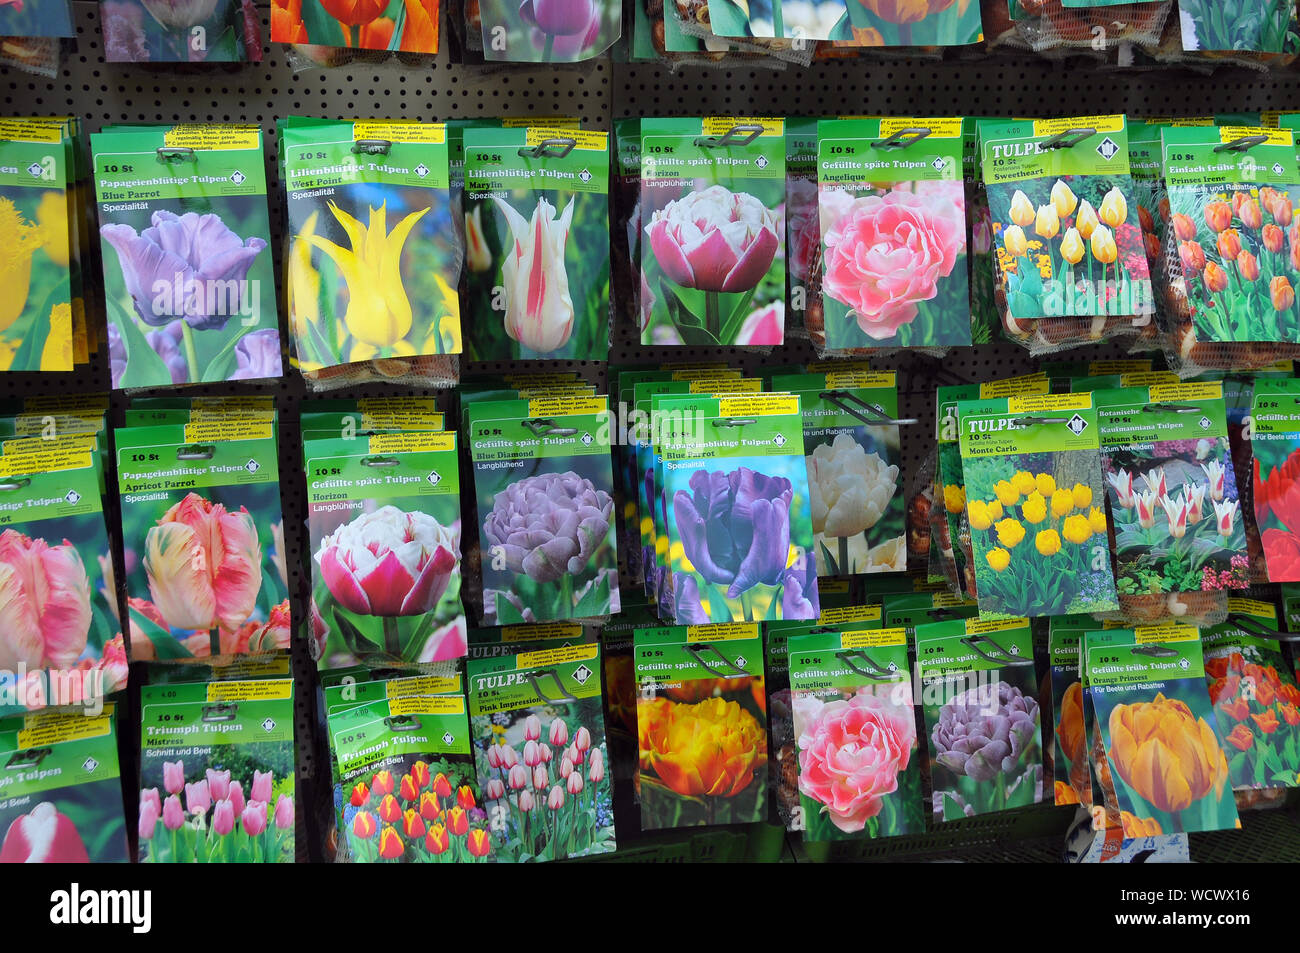 flower bulbs, Keukenhof, Netherlands, Europe Stock Photo